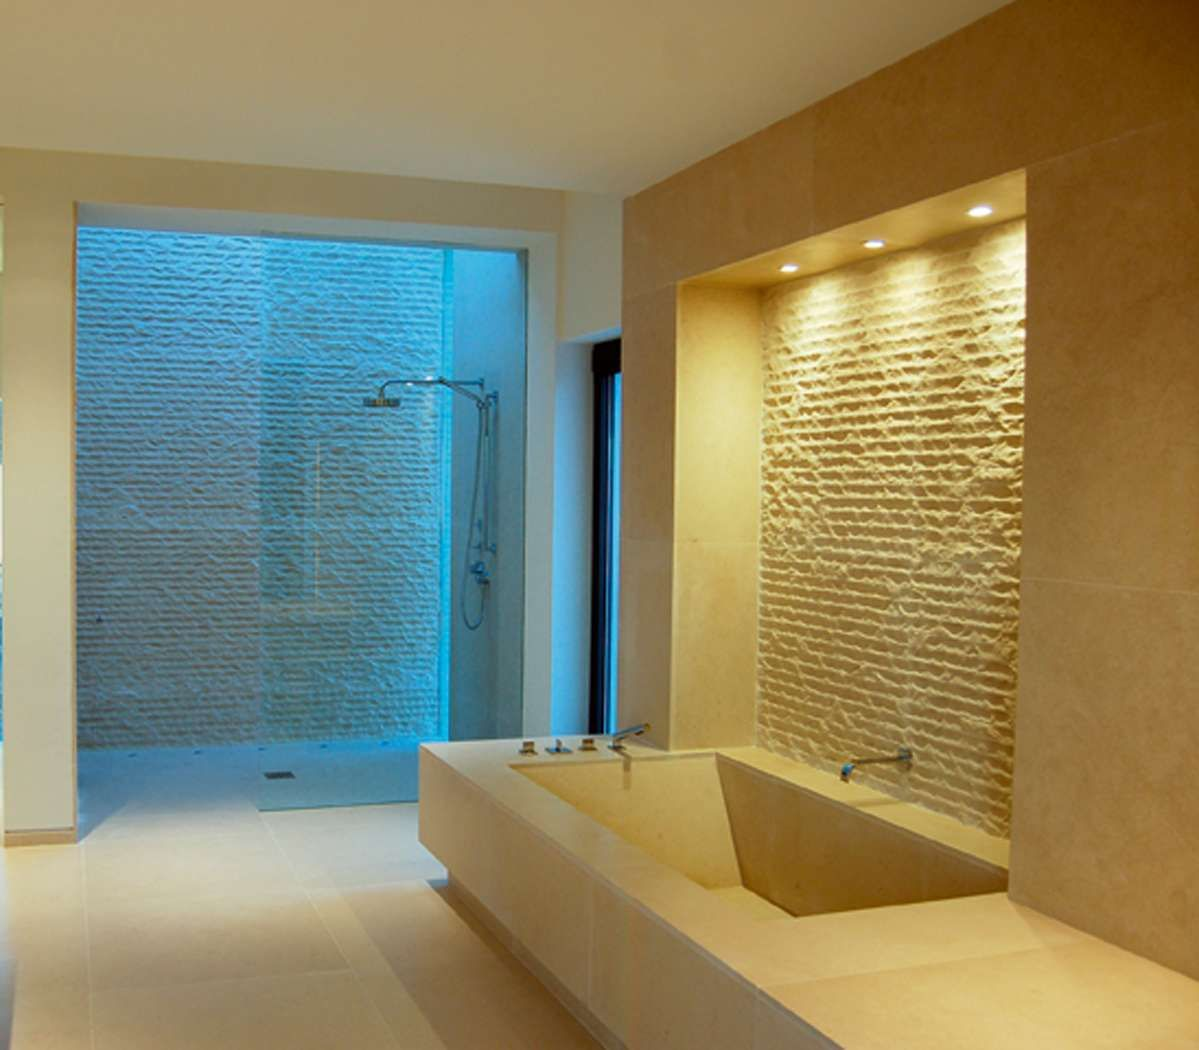 Wet room bathroom design amazing with pics wet room set for Wet floor bathroom designs